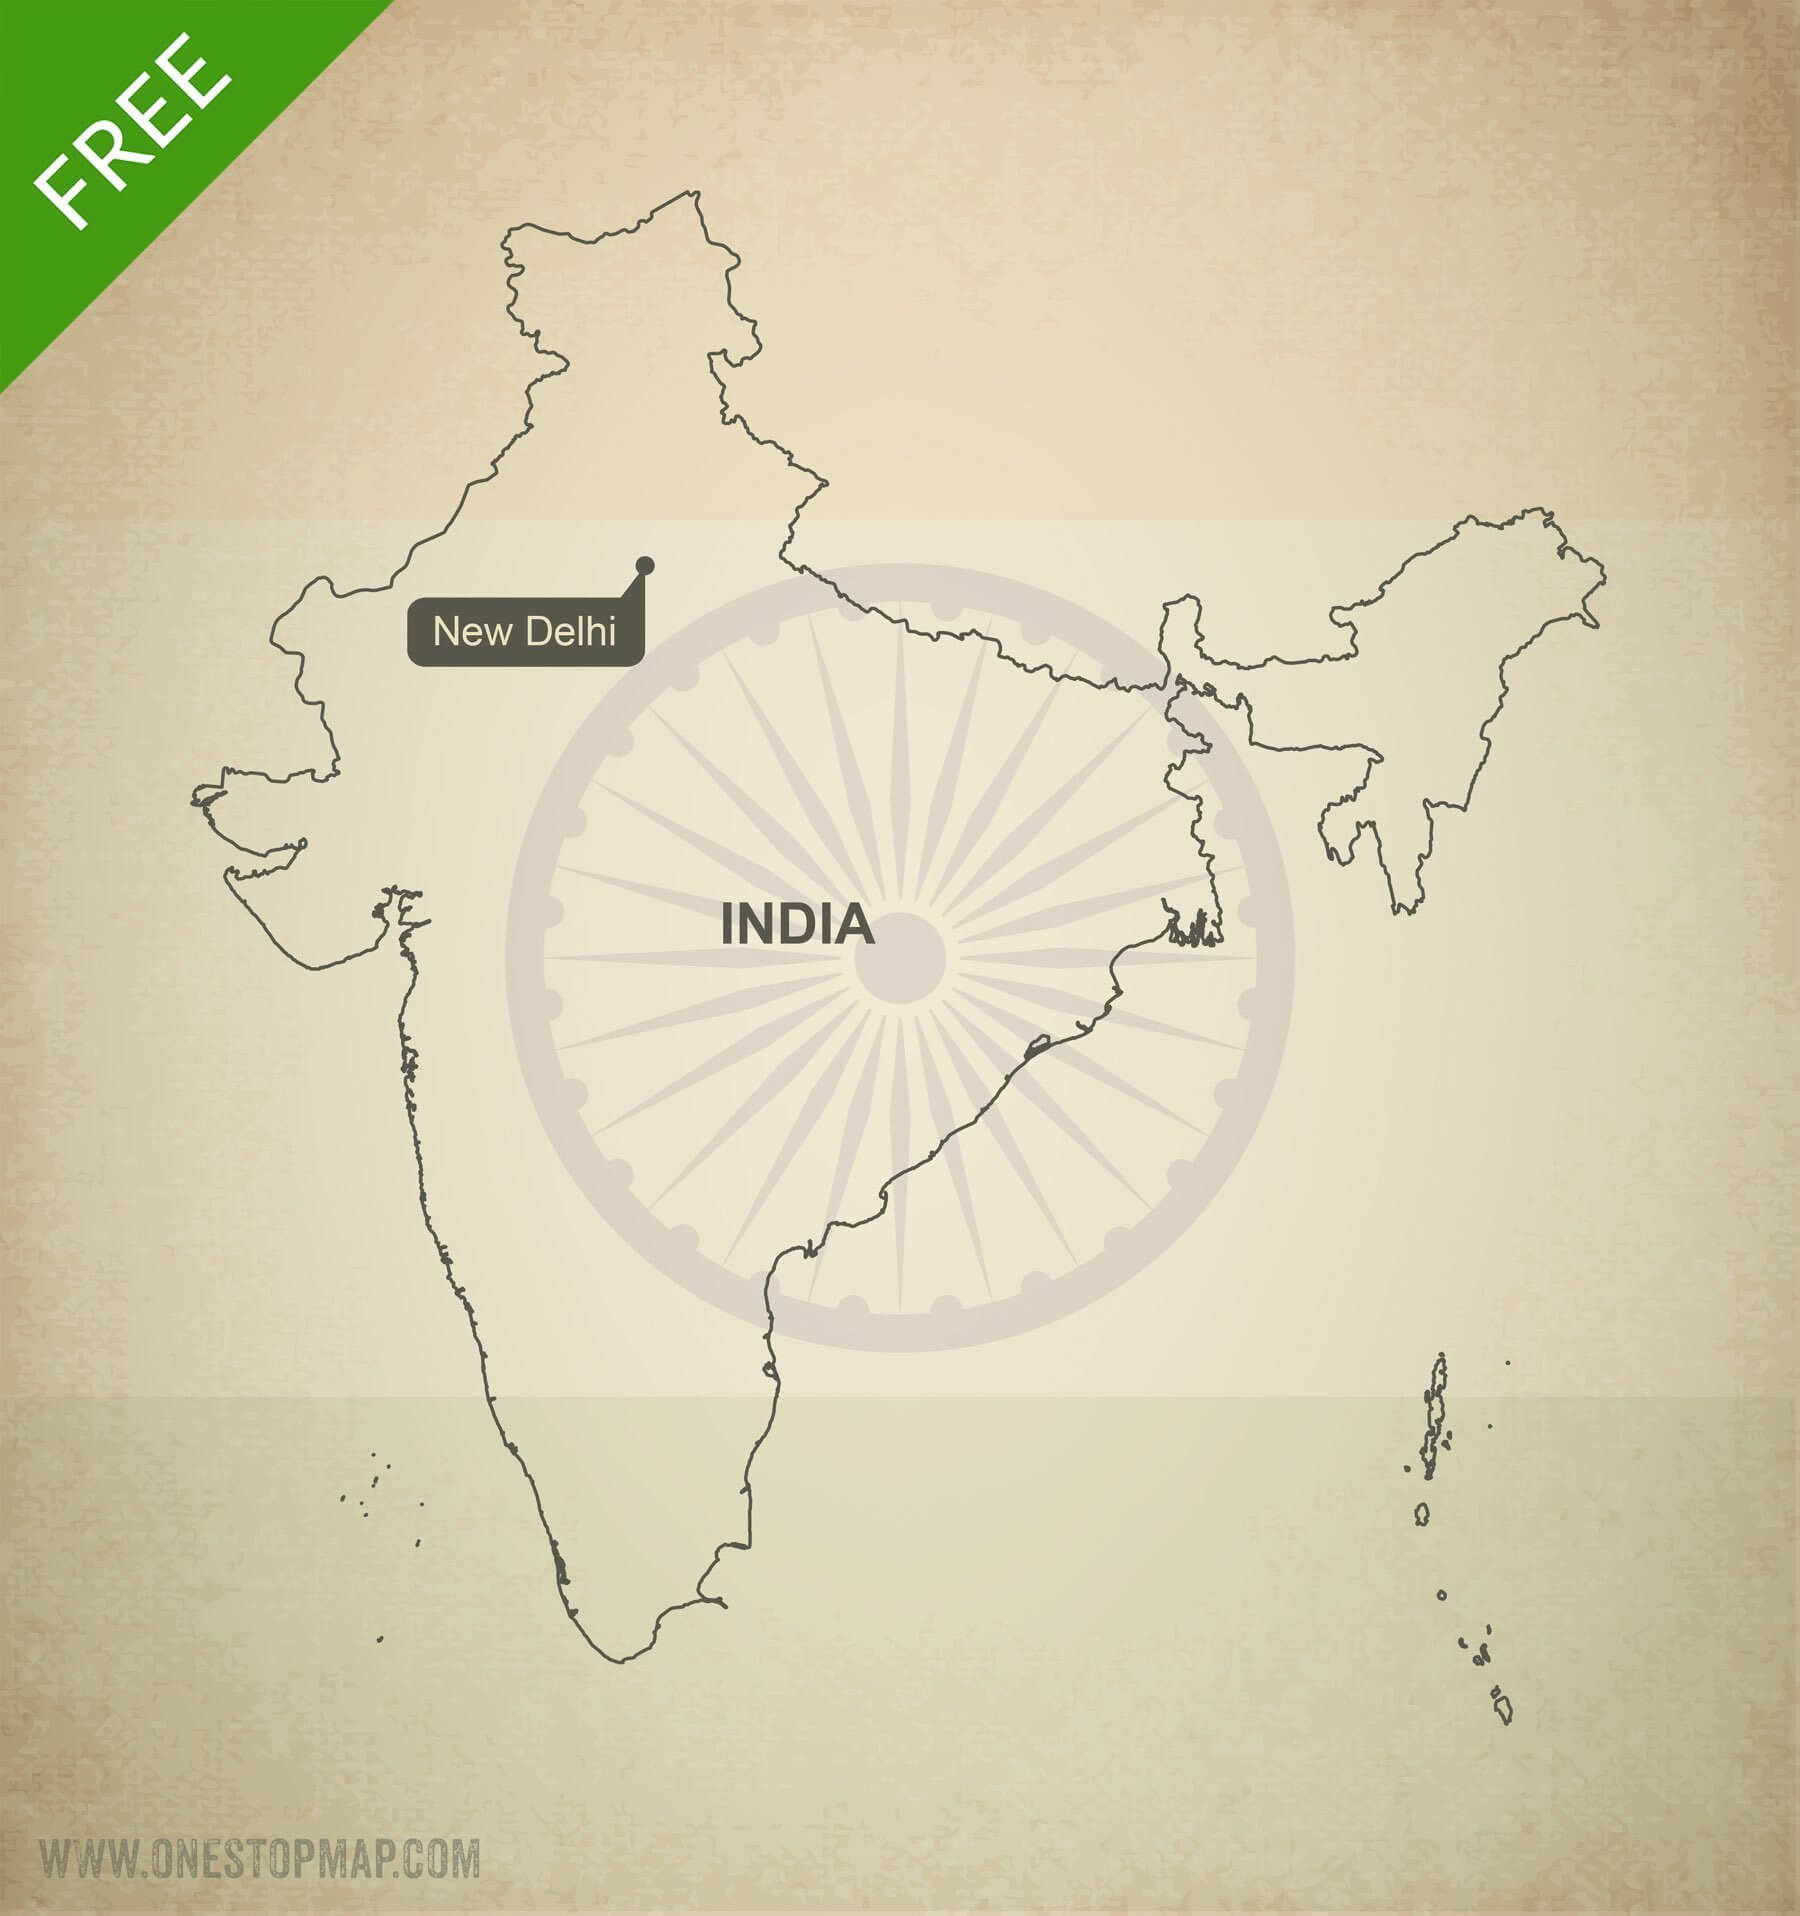 Free Vector Map Of India Outline One Stop Map